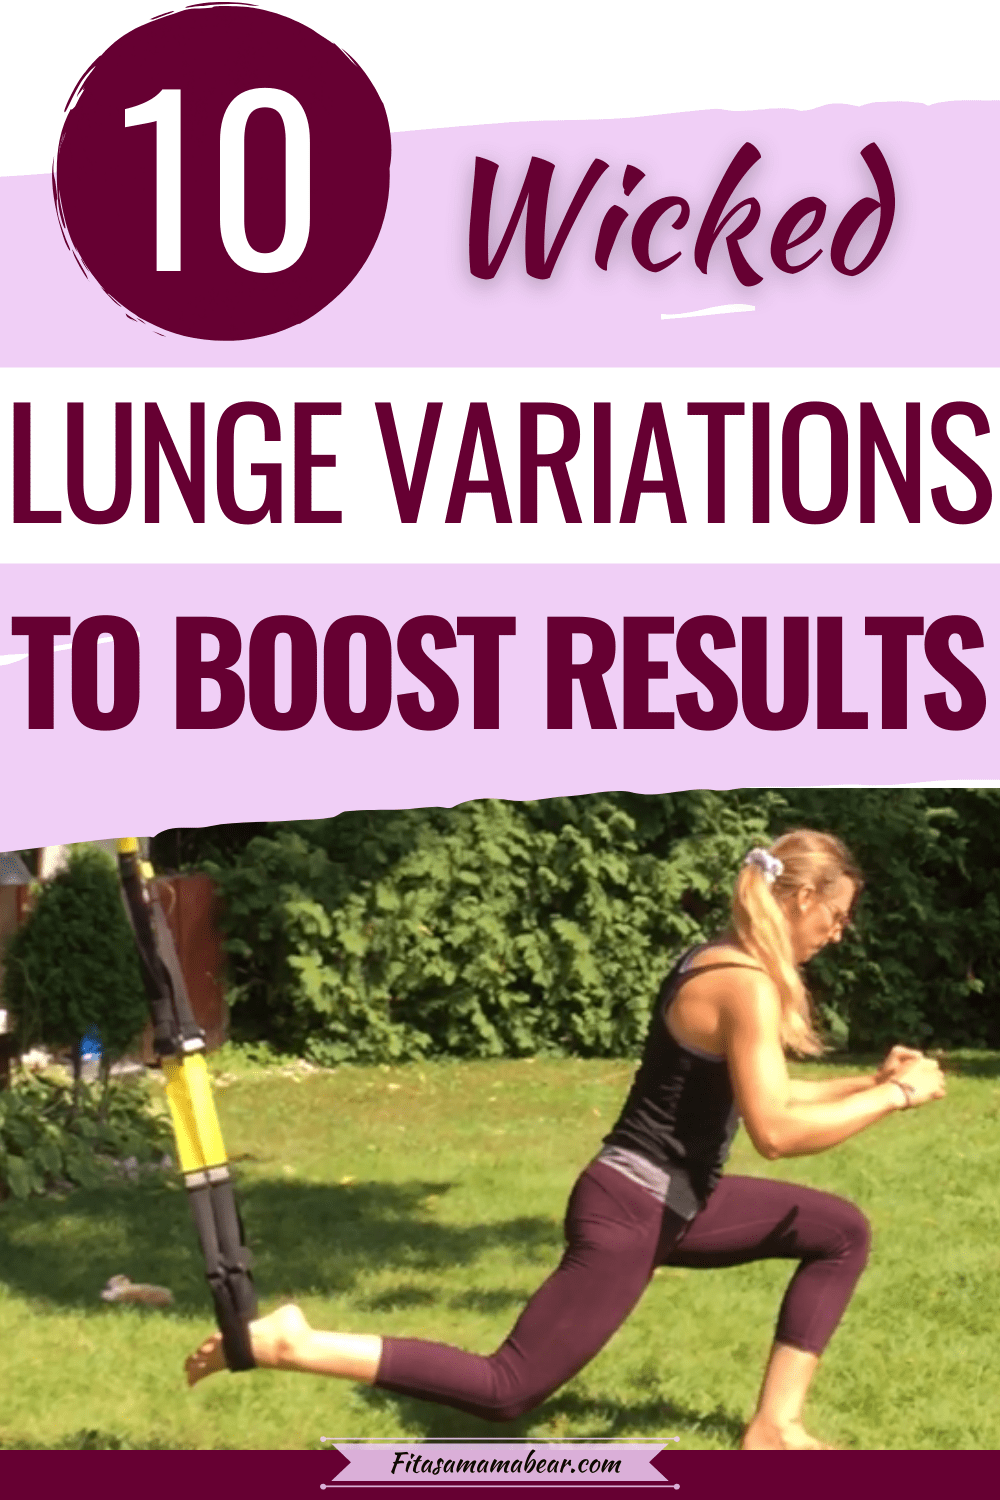 Pinterest image with text: woman in workout clothes outside performing a TRX lunge